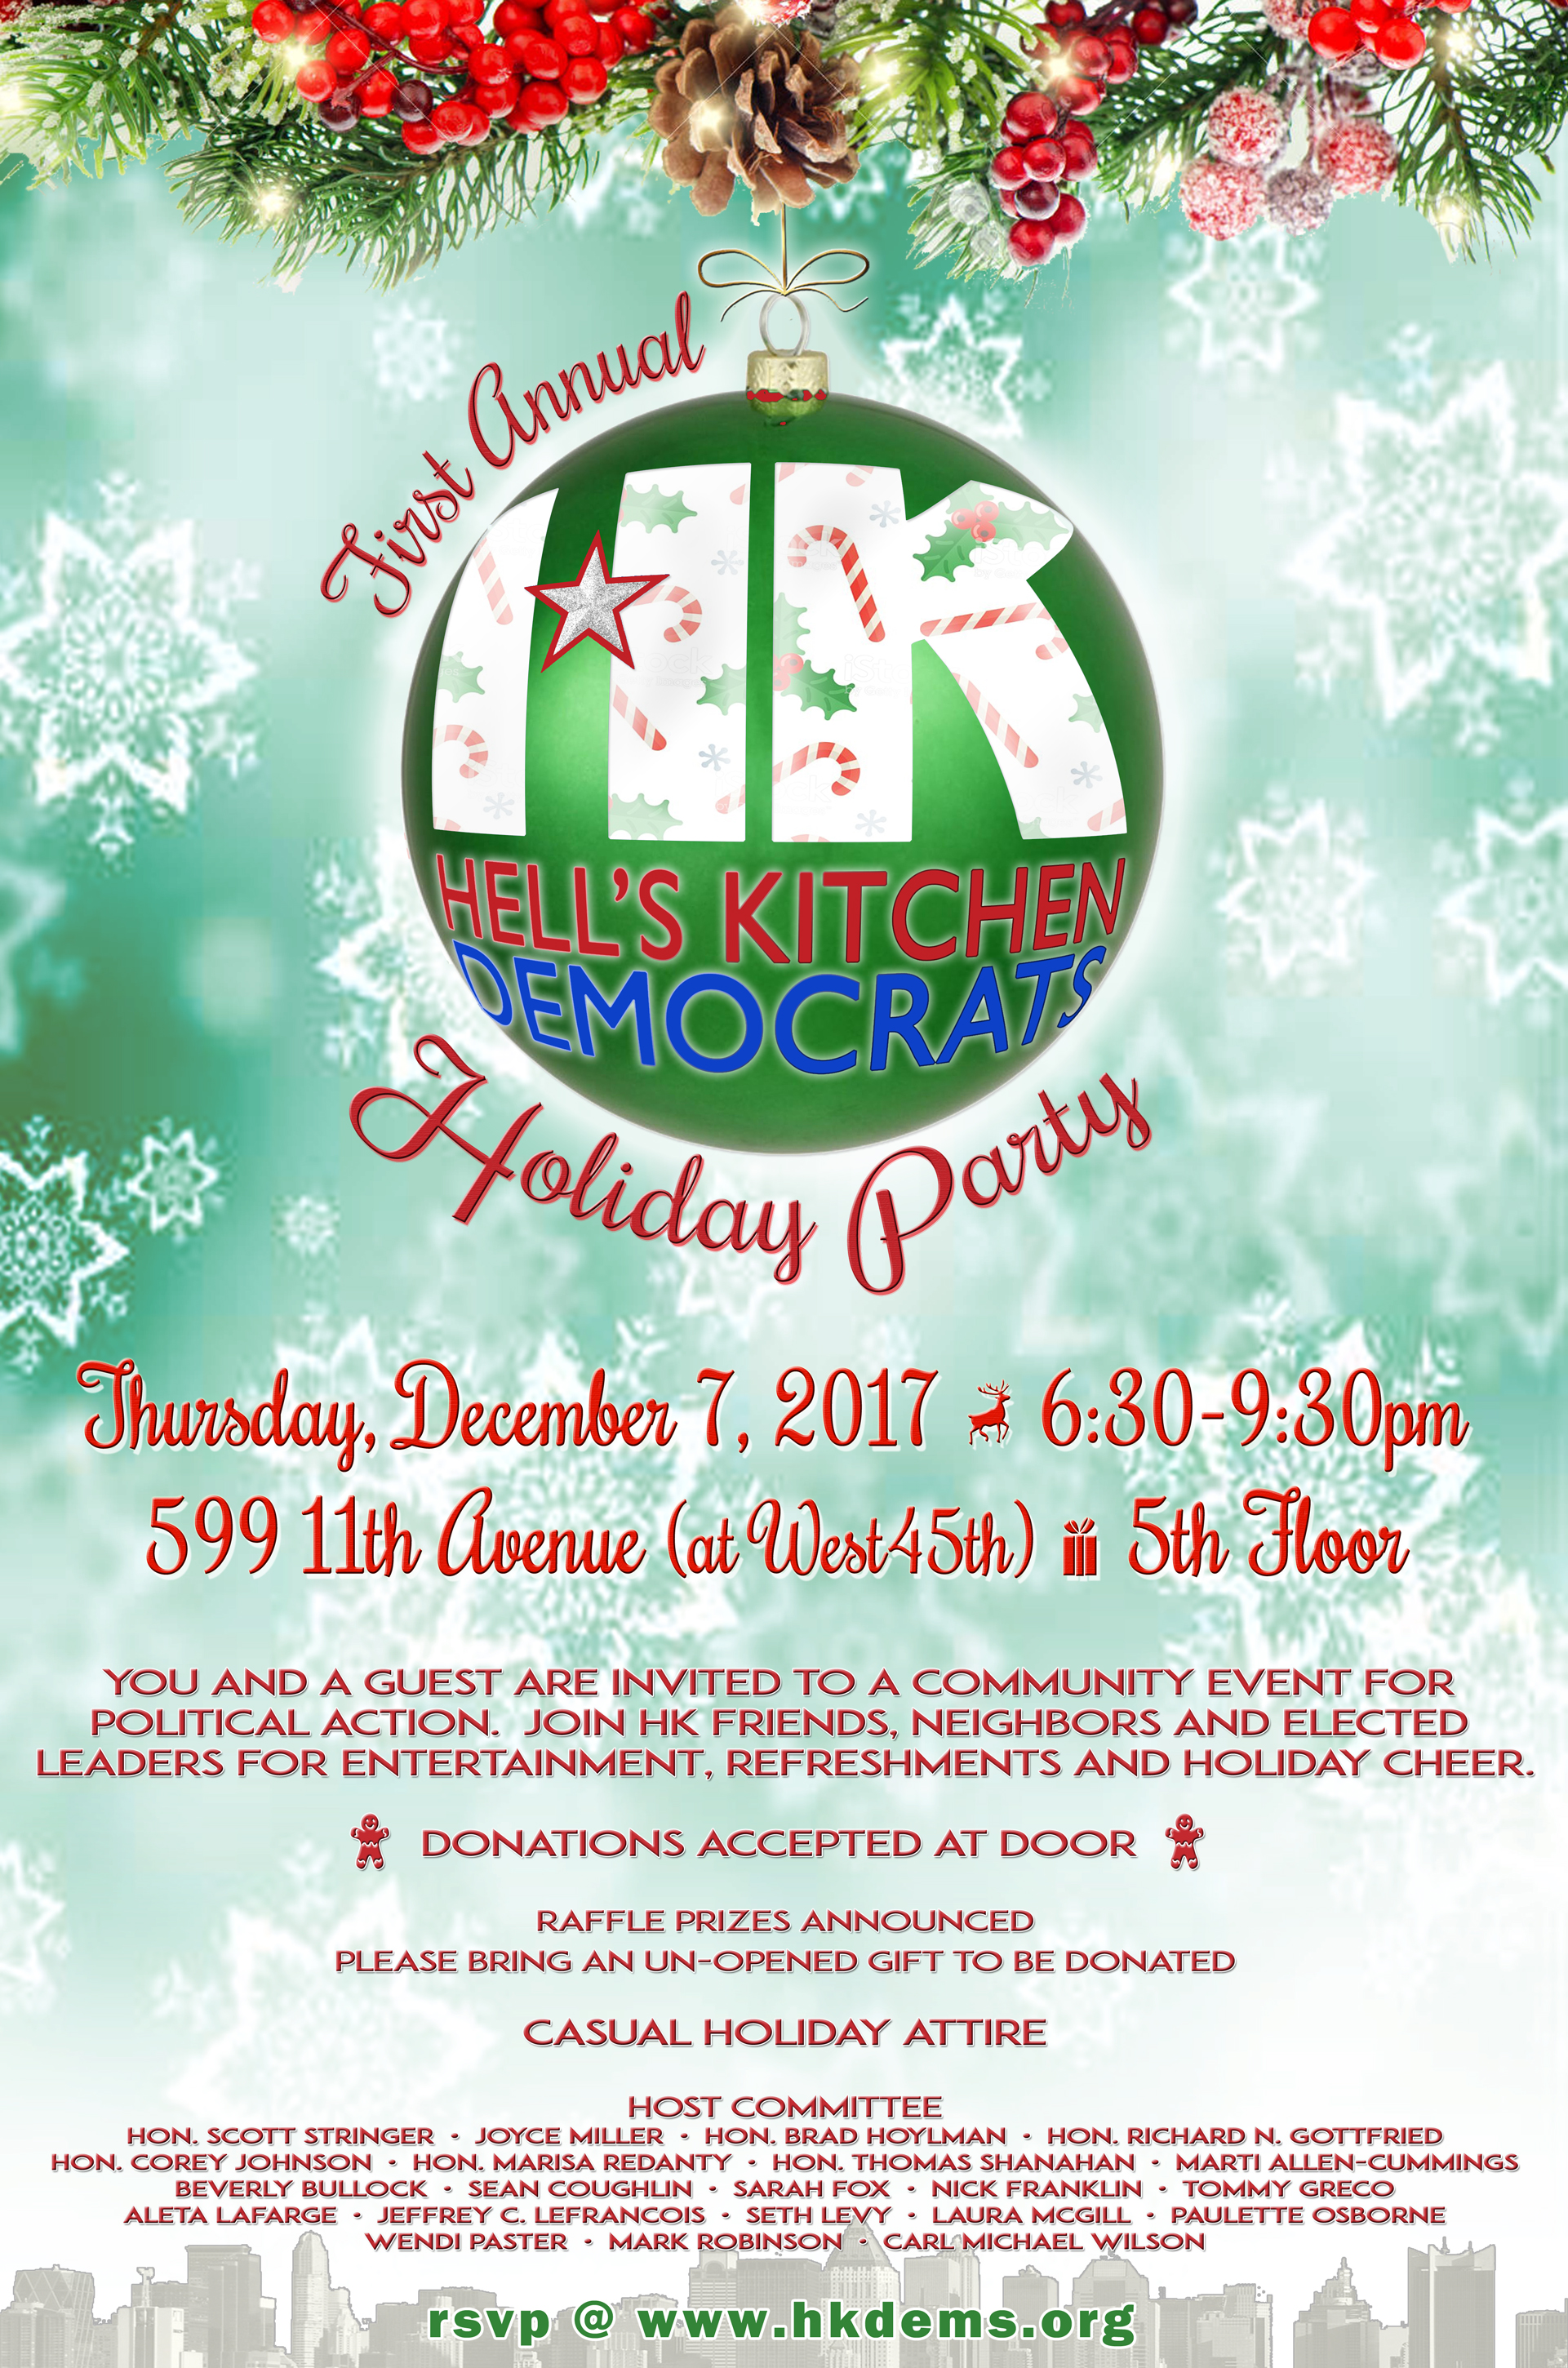 Holiday Party Invite - 6 50pct